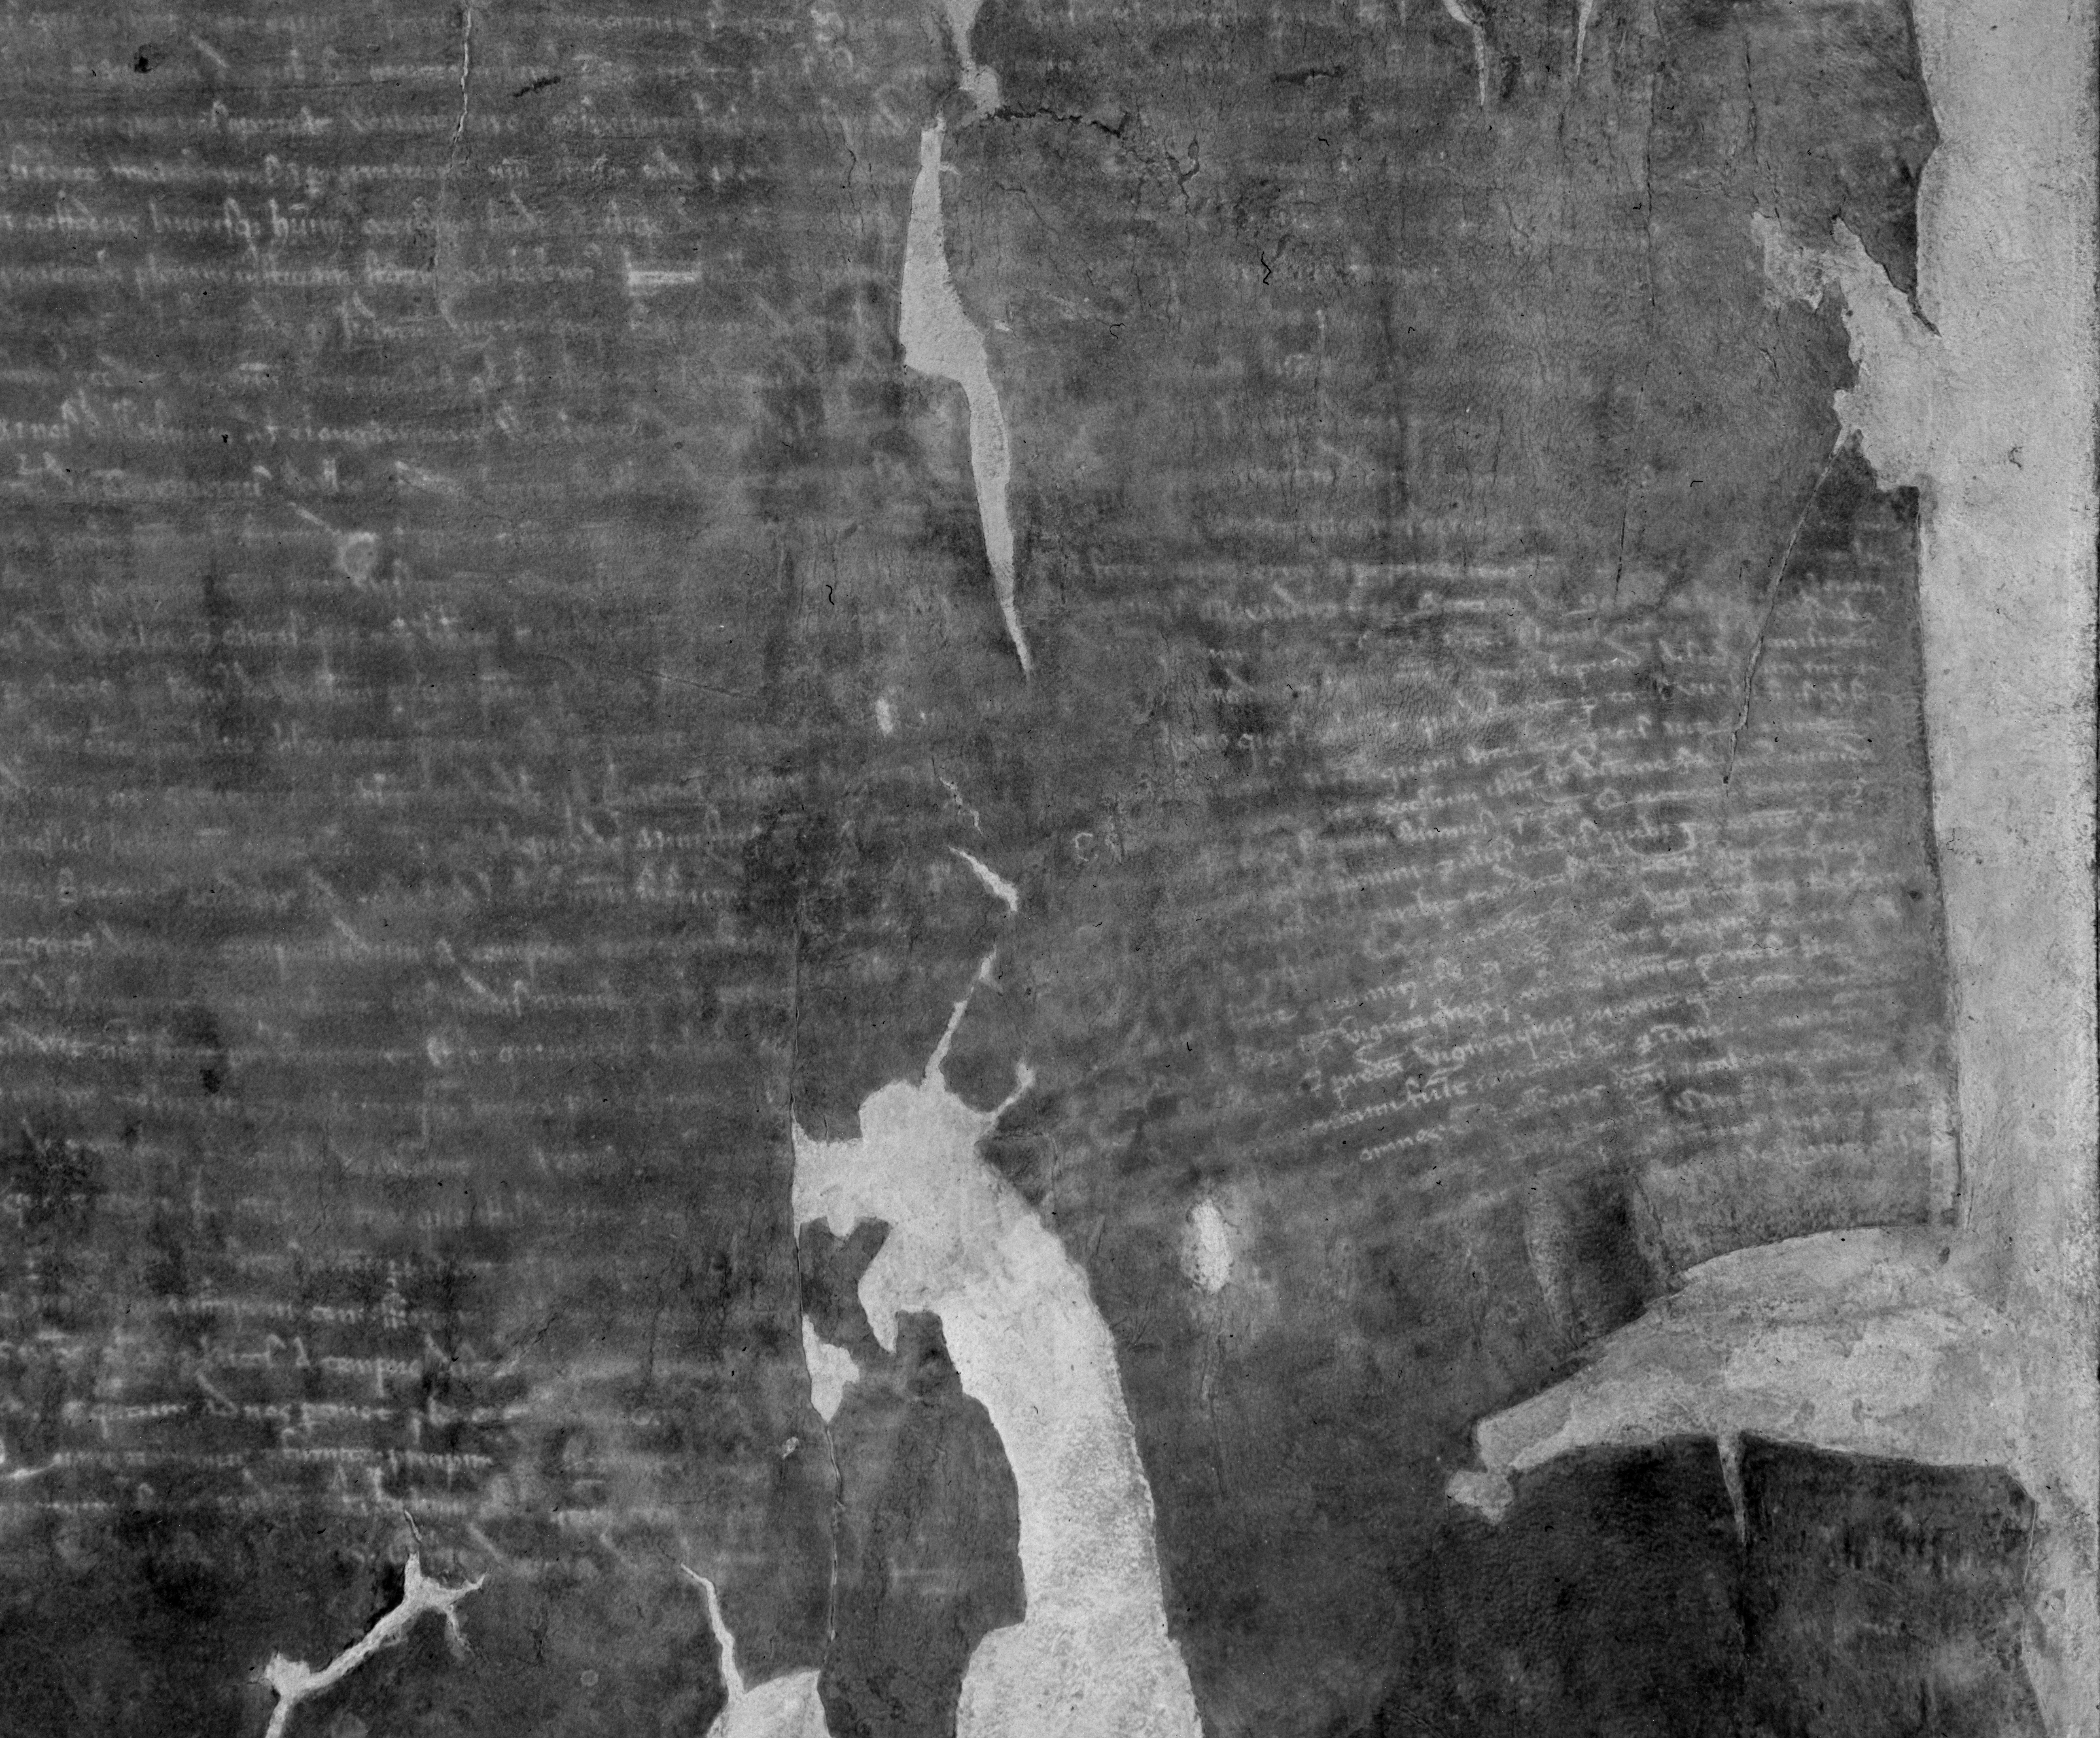 British Library damaged Magna Carta manuscript after multi-spectral analysis, showing the most legible image of the charter seen in nearly 200 years.